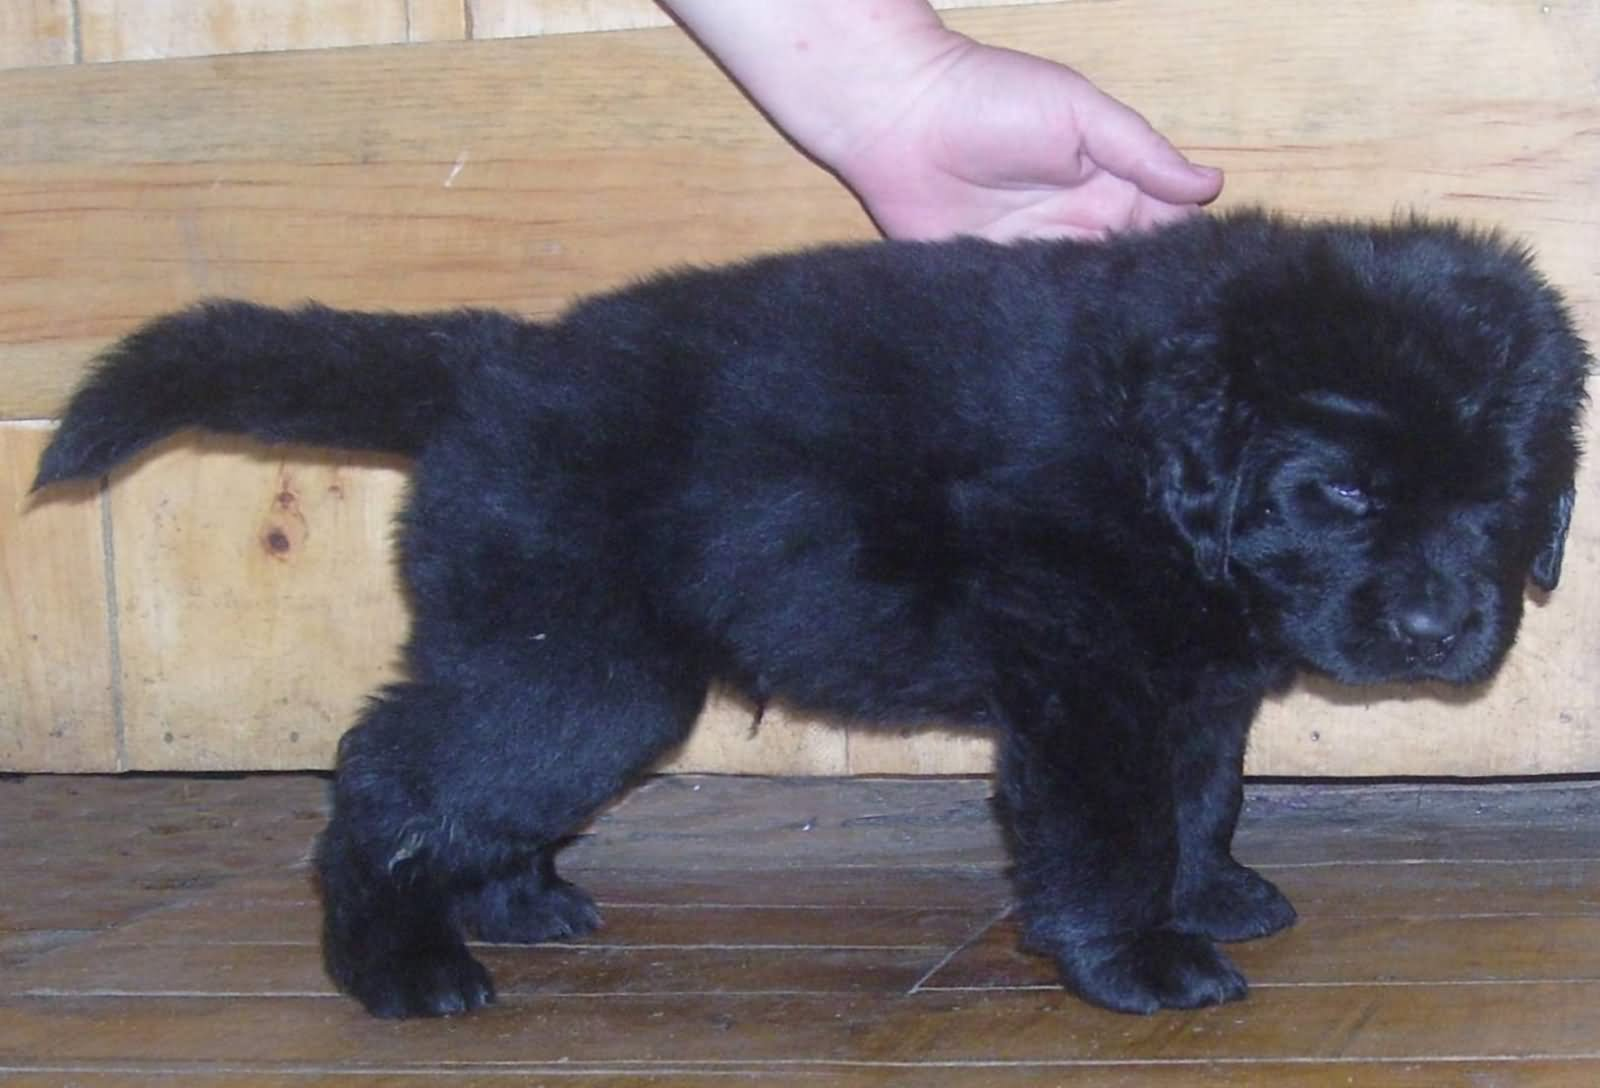 35 very beautiful newfoundland dog pictures - 4 Weeks Old Black Newfoundland Puppy